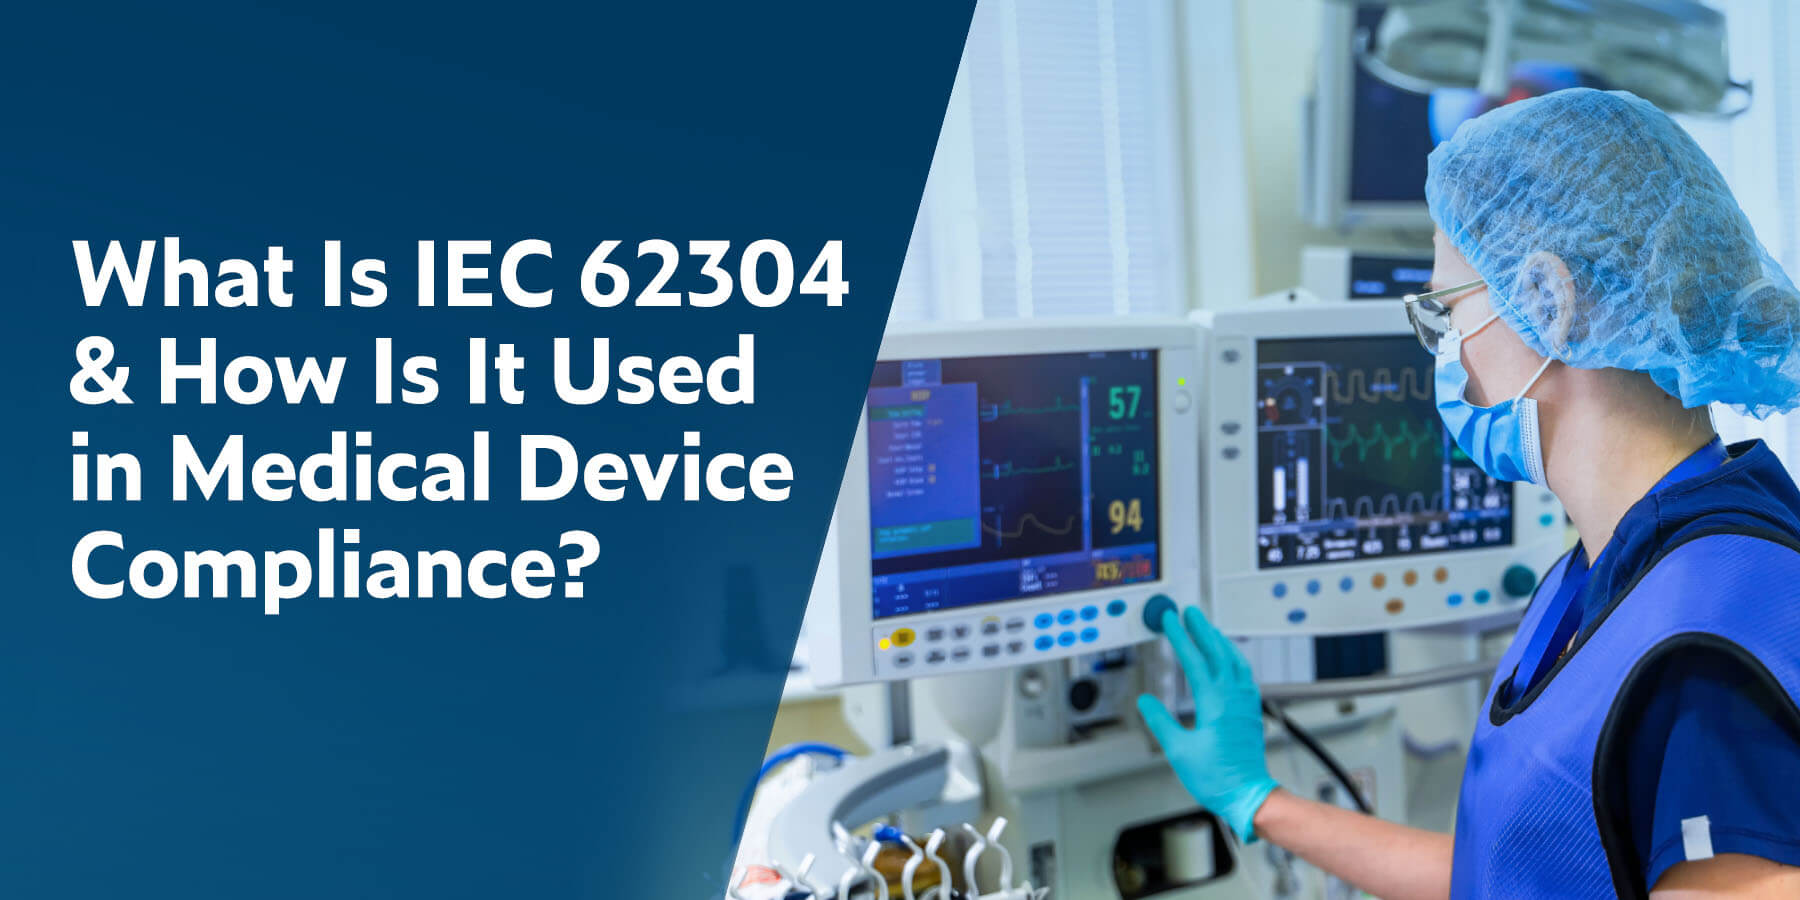 What Is IEC 62304 & How Is It Used in Medical Device Compliance?